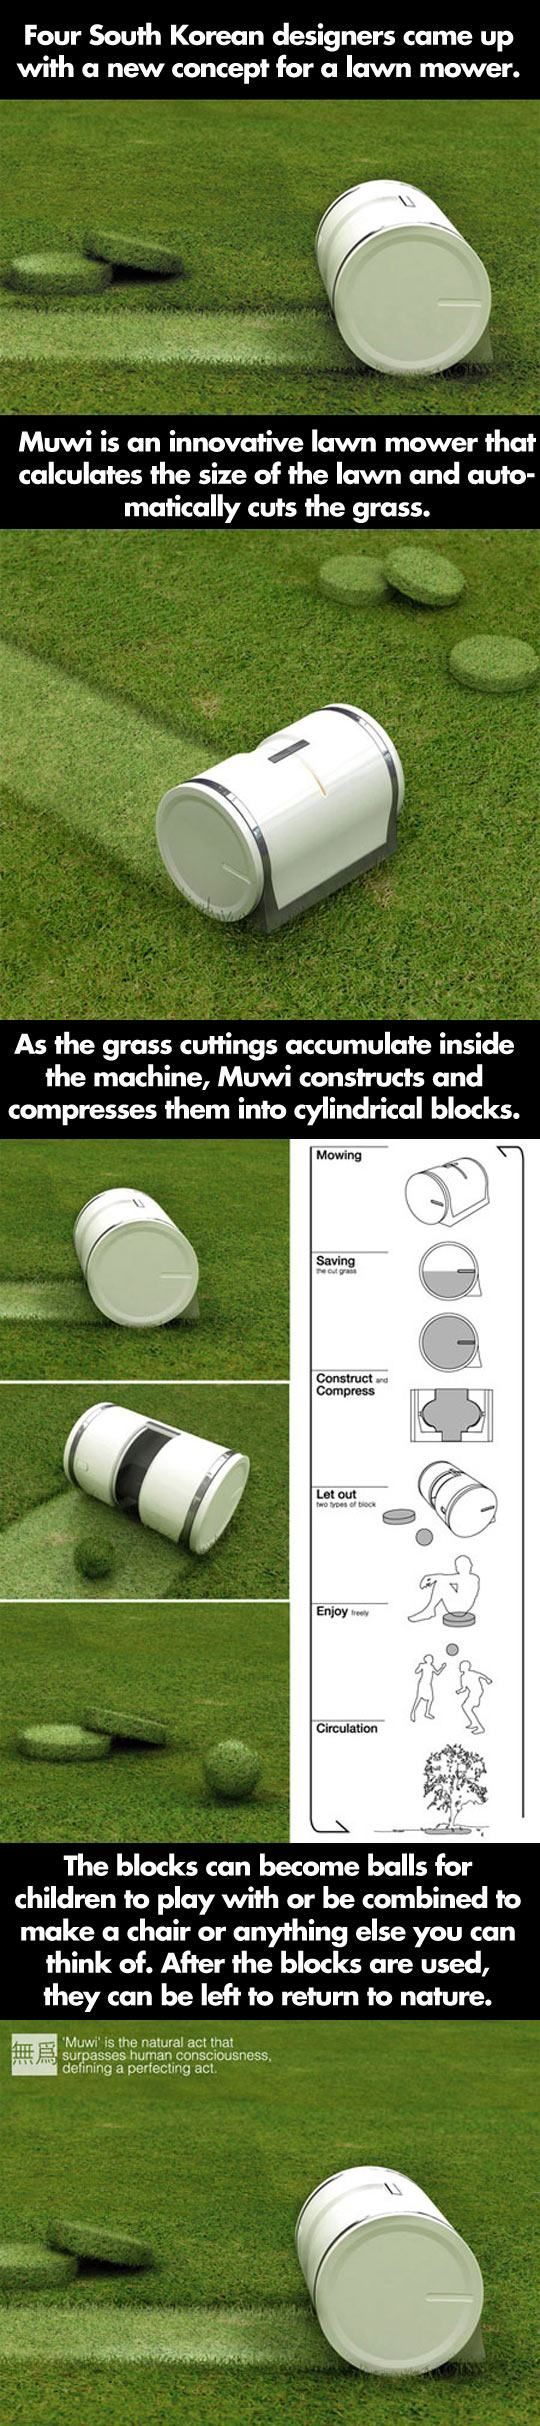 Automatic lawnmower that makes shapes with the clippings!